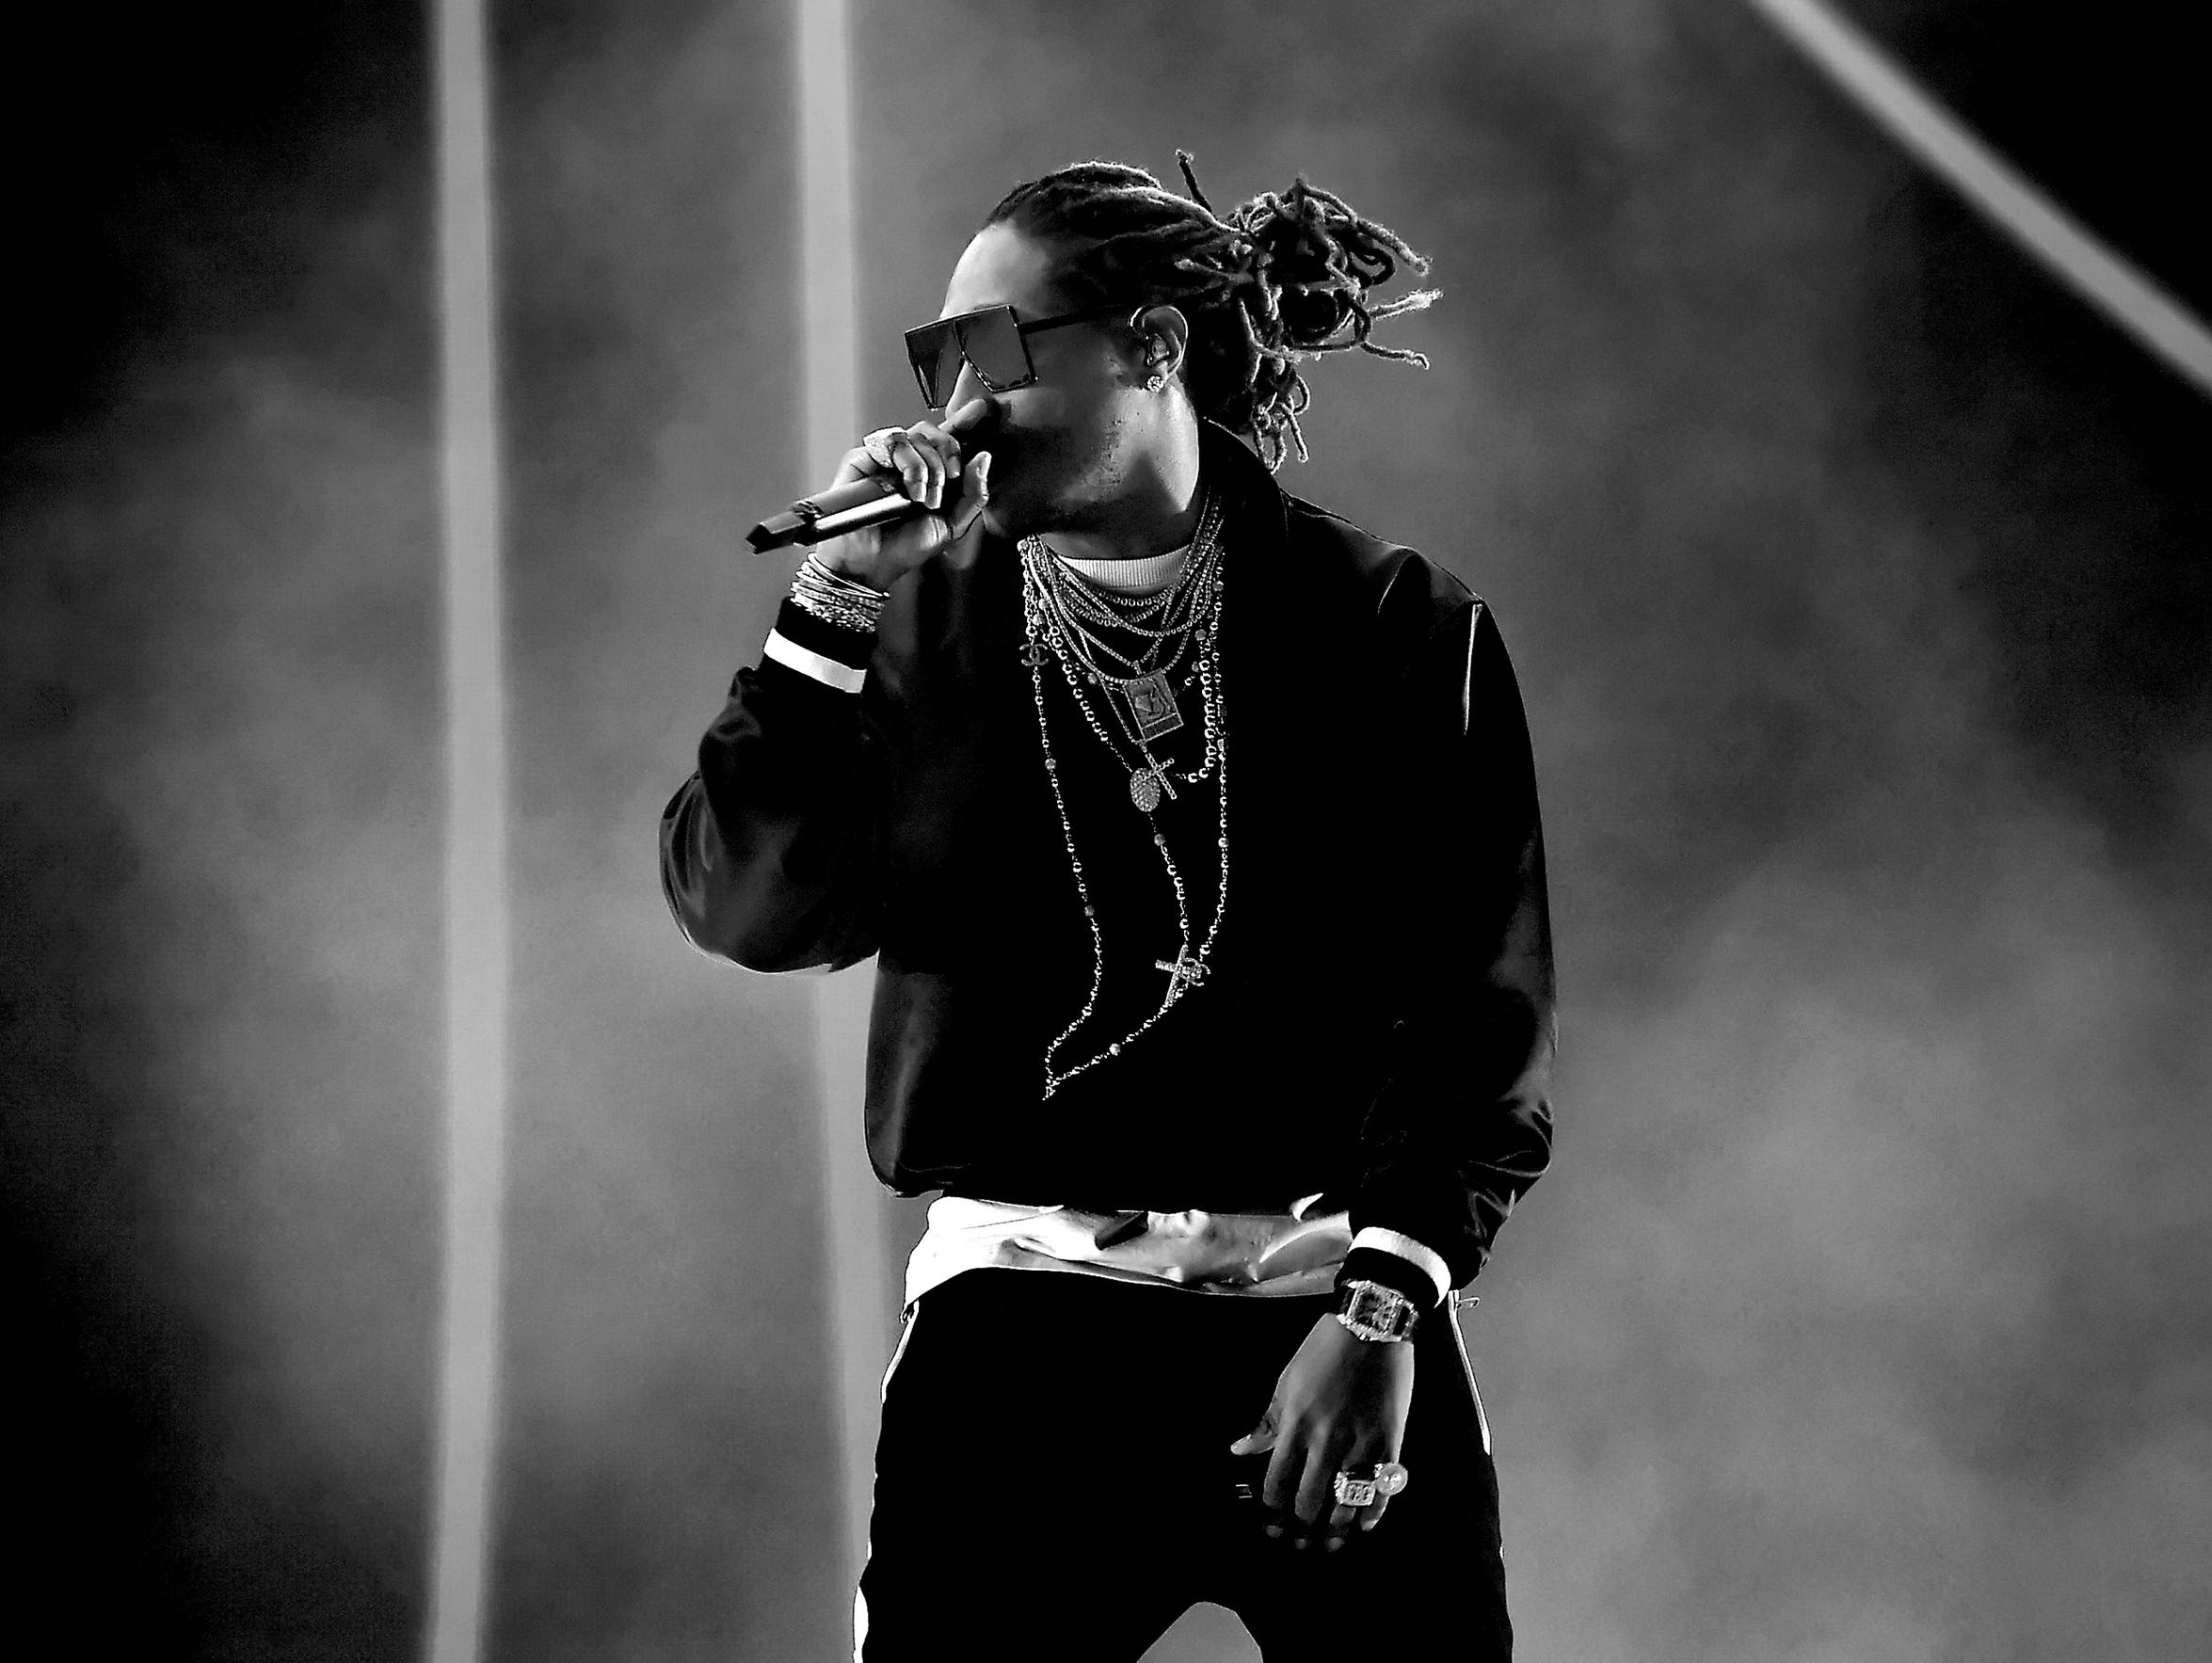 Rapper Future performs on the Coachella Stage during